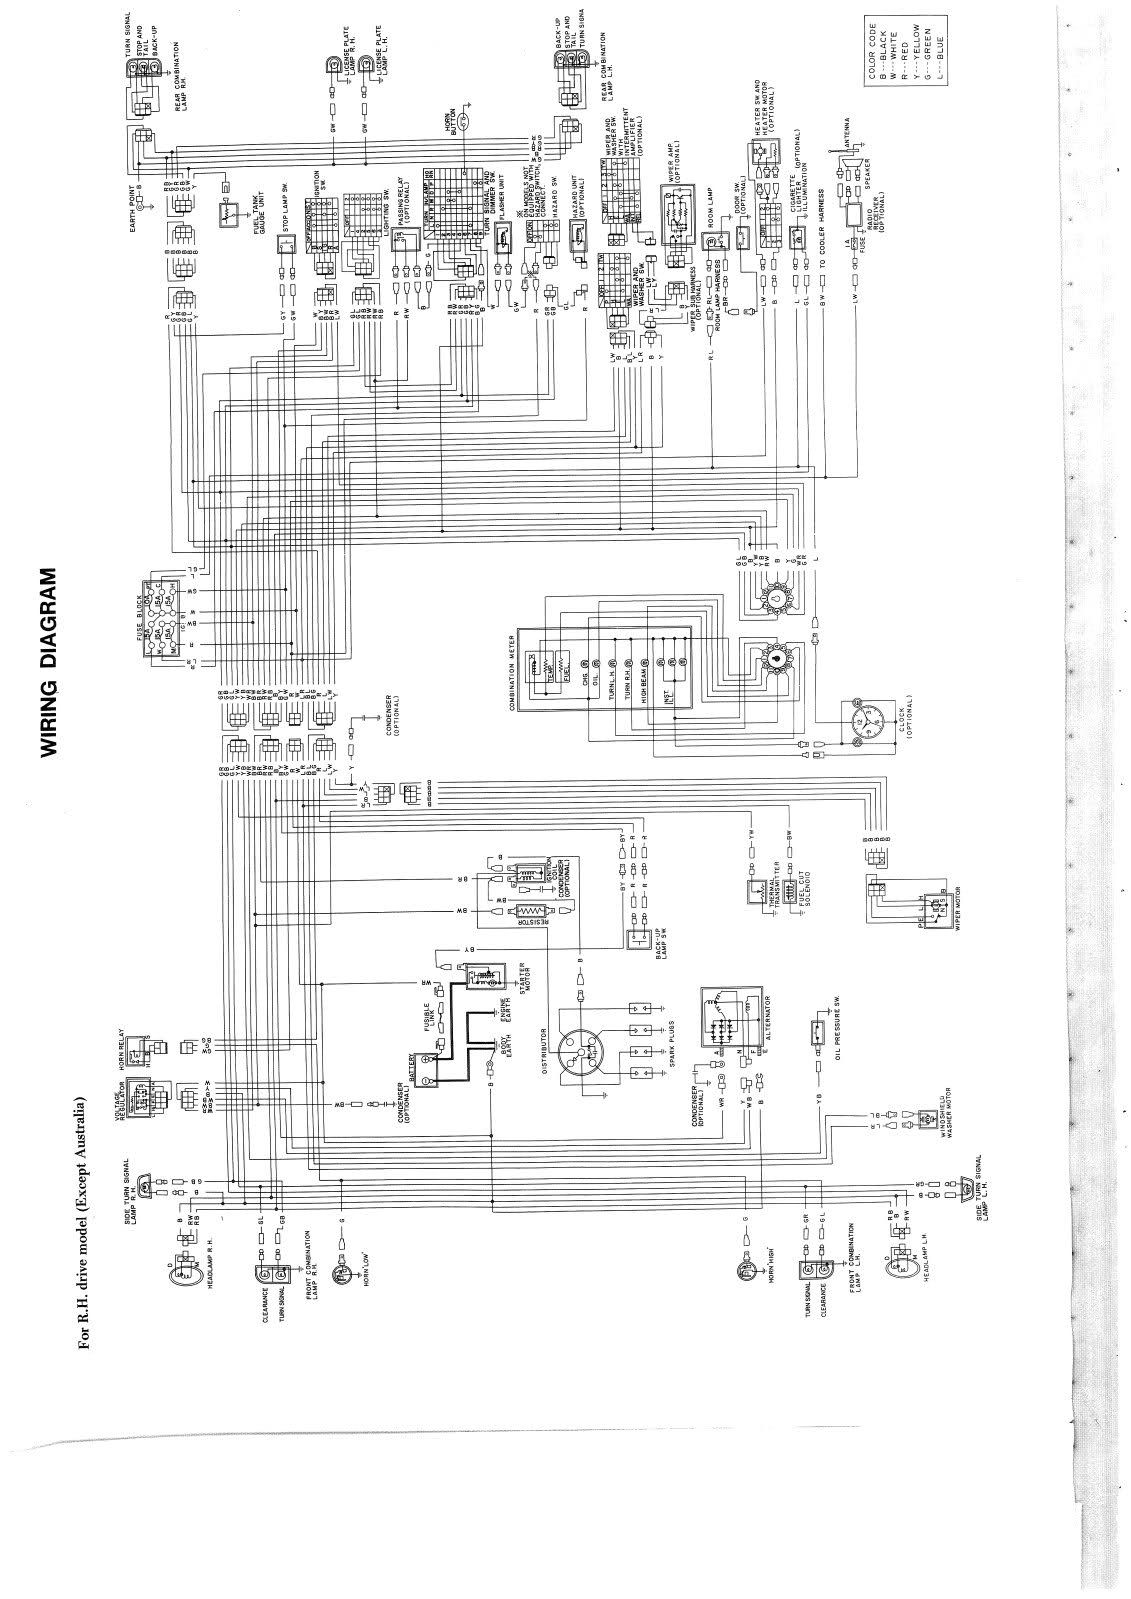 Wiring diagram for nissan 1400 bakkie #6